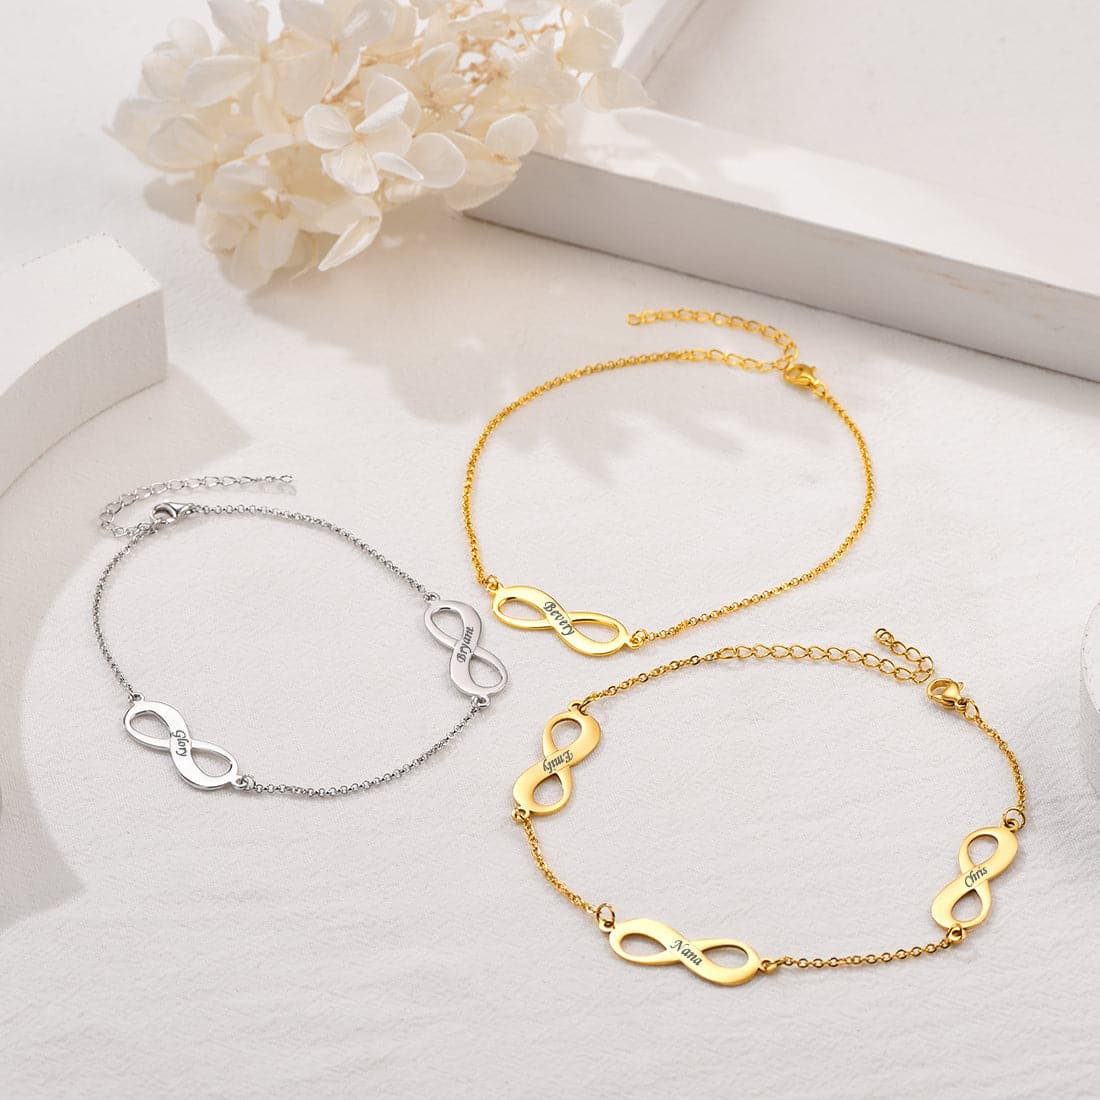 Dainty customized 316L stainless steel 18k gold plated personalized engravable infinity symbol name charm anklet bracelet for women girls